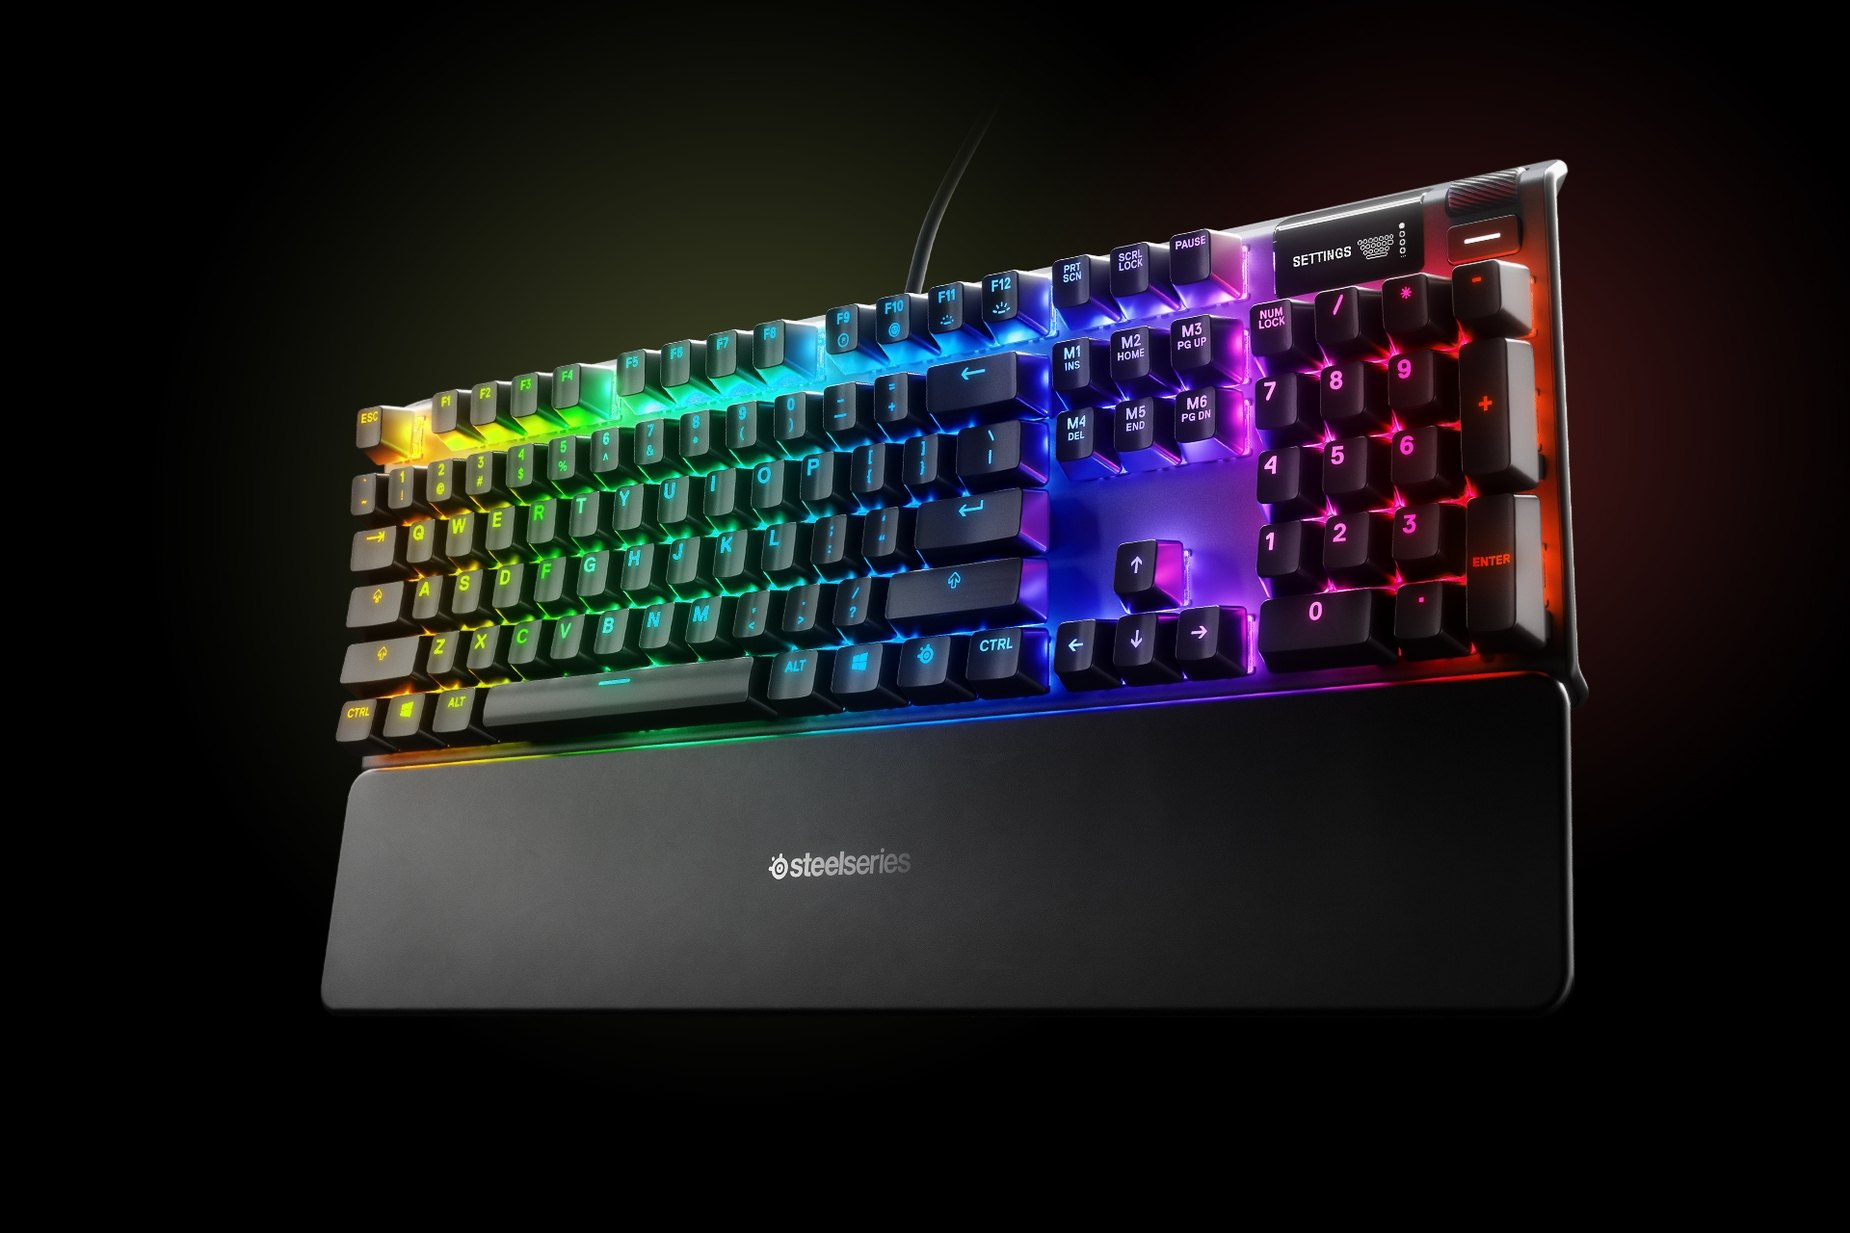 French - Apex 7 (Red Switch) gaming keyboard with the illumination lit up on dark background, also shows the OLED screen and controls used to change settings and adjust audio